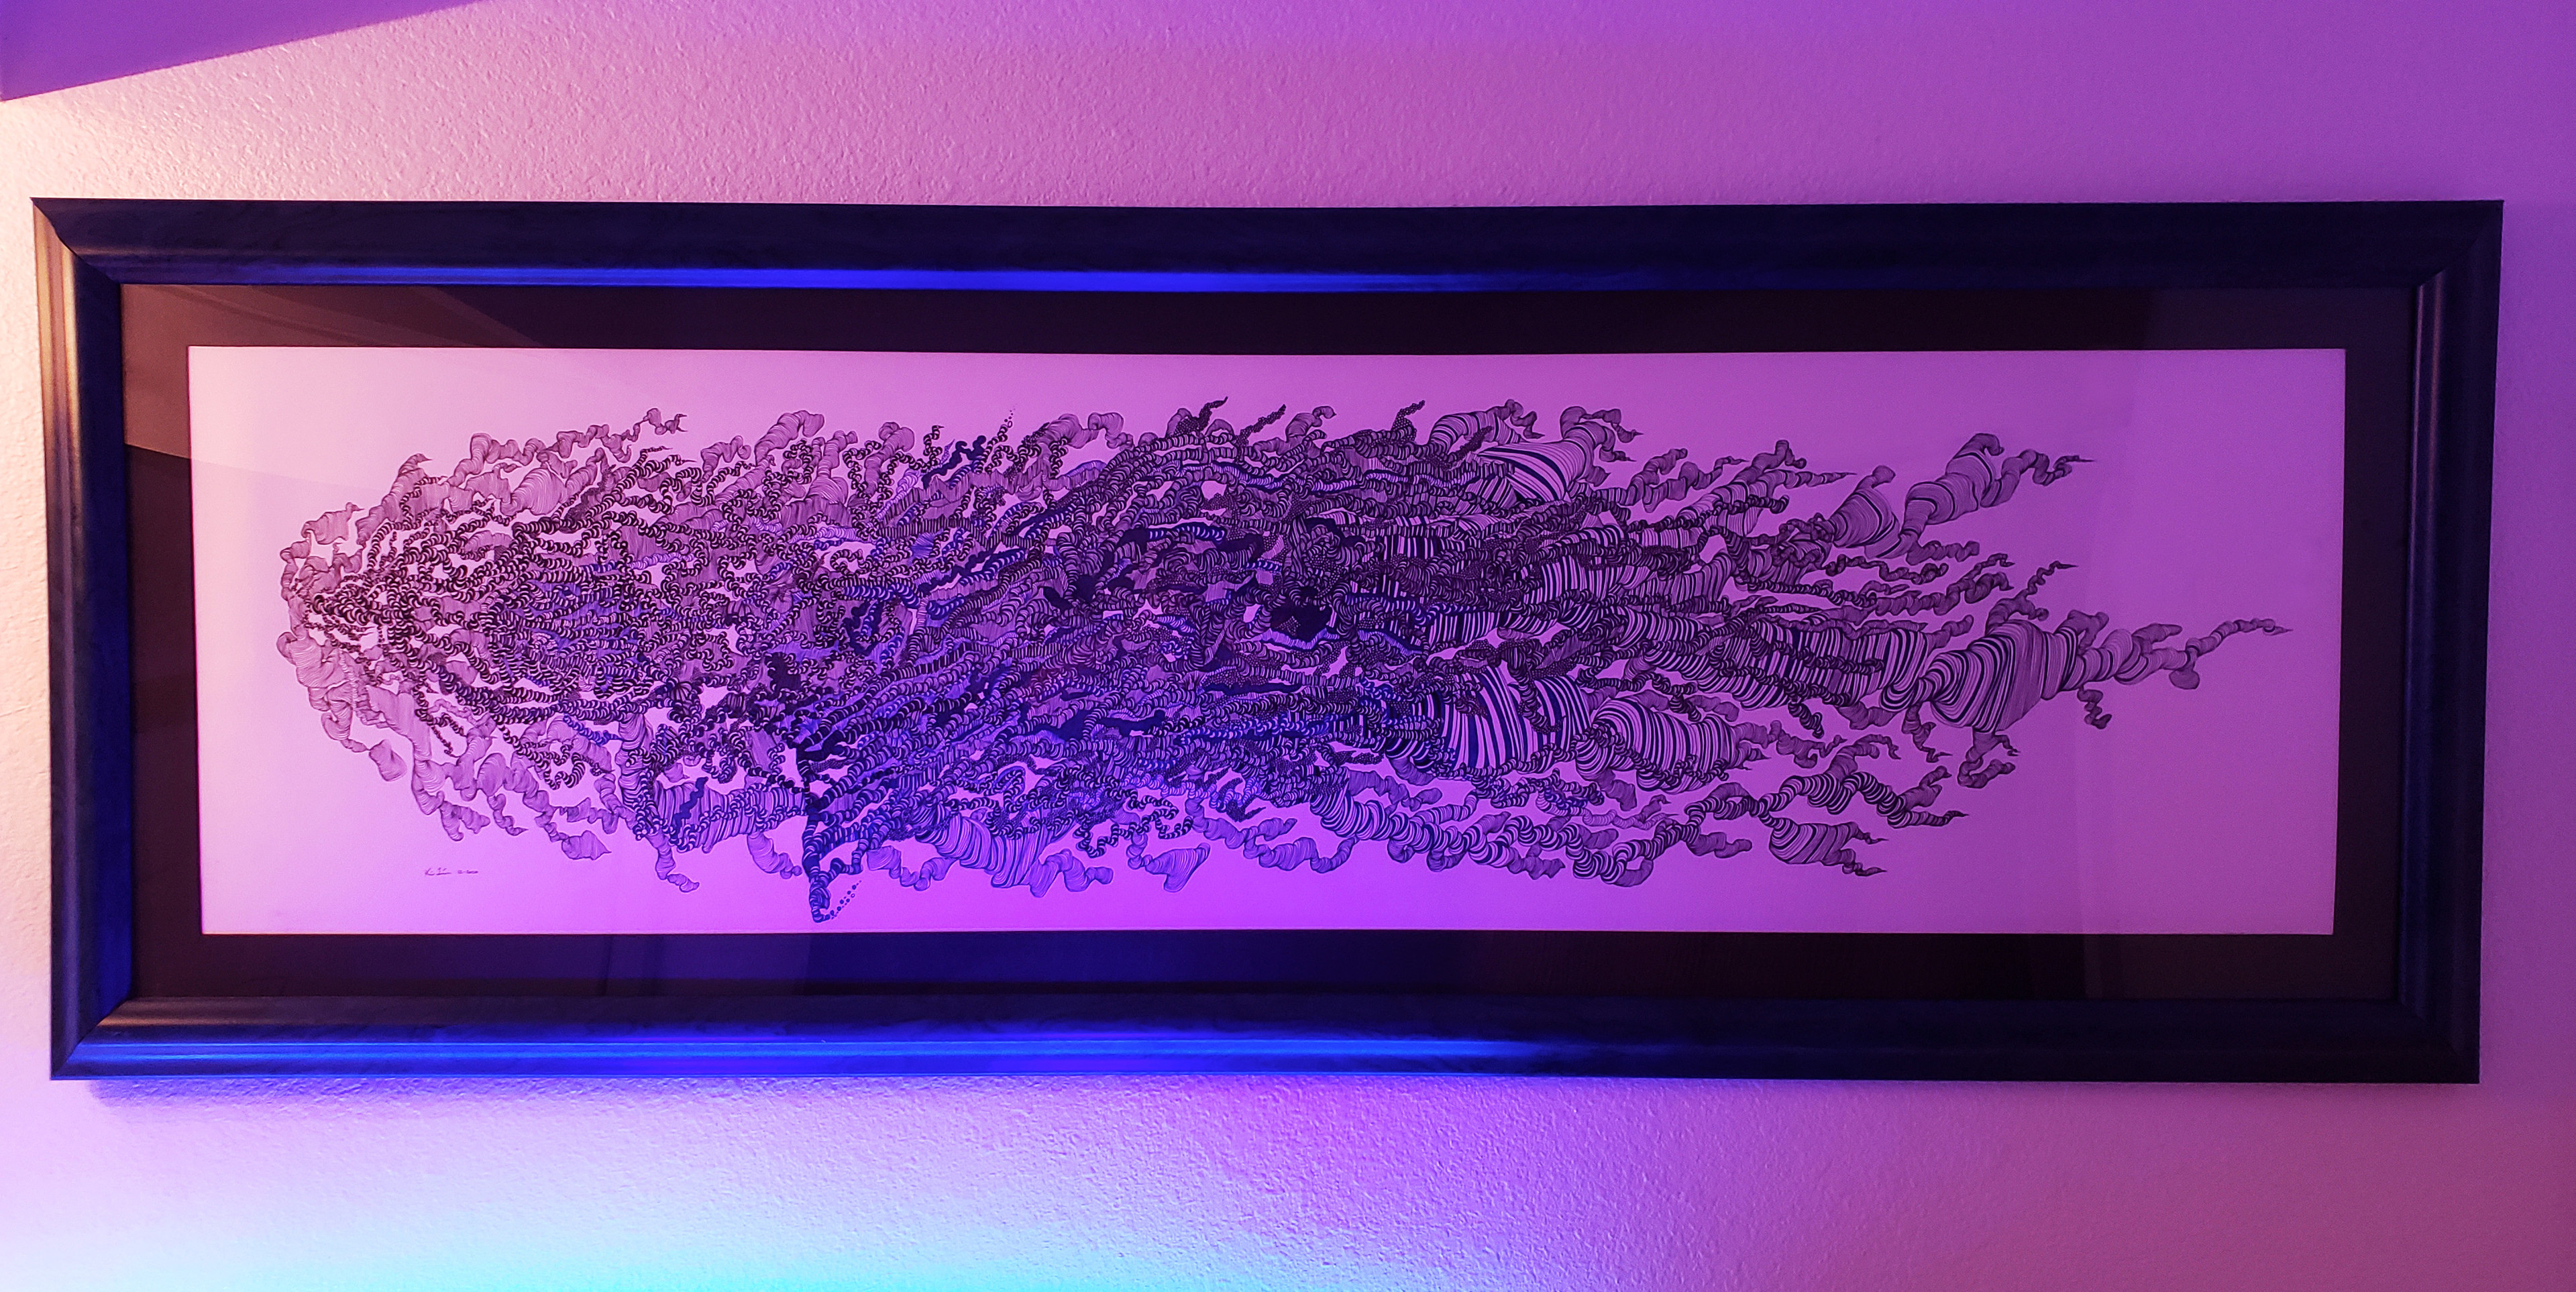 Framed and lit.